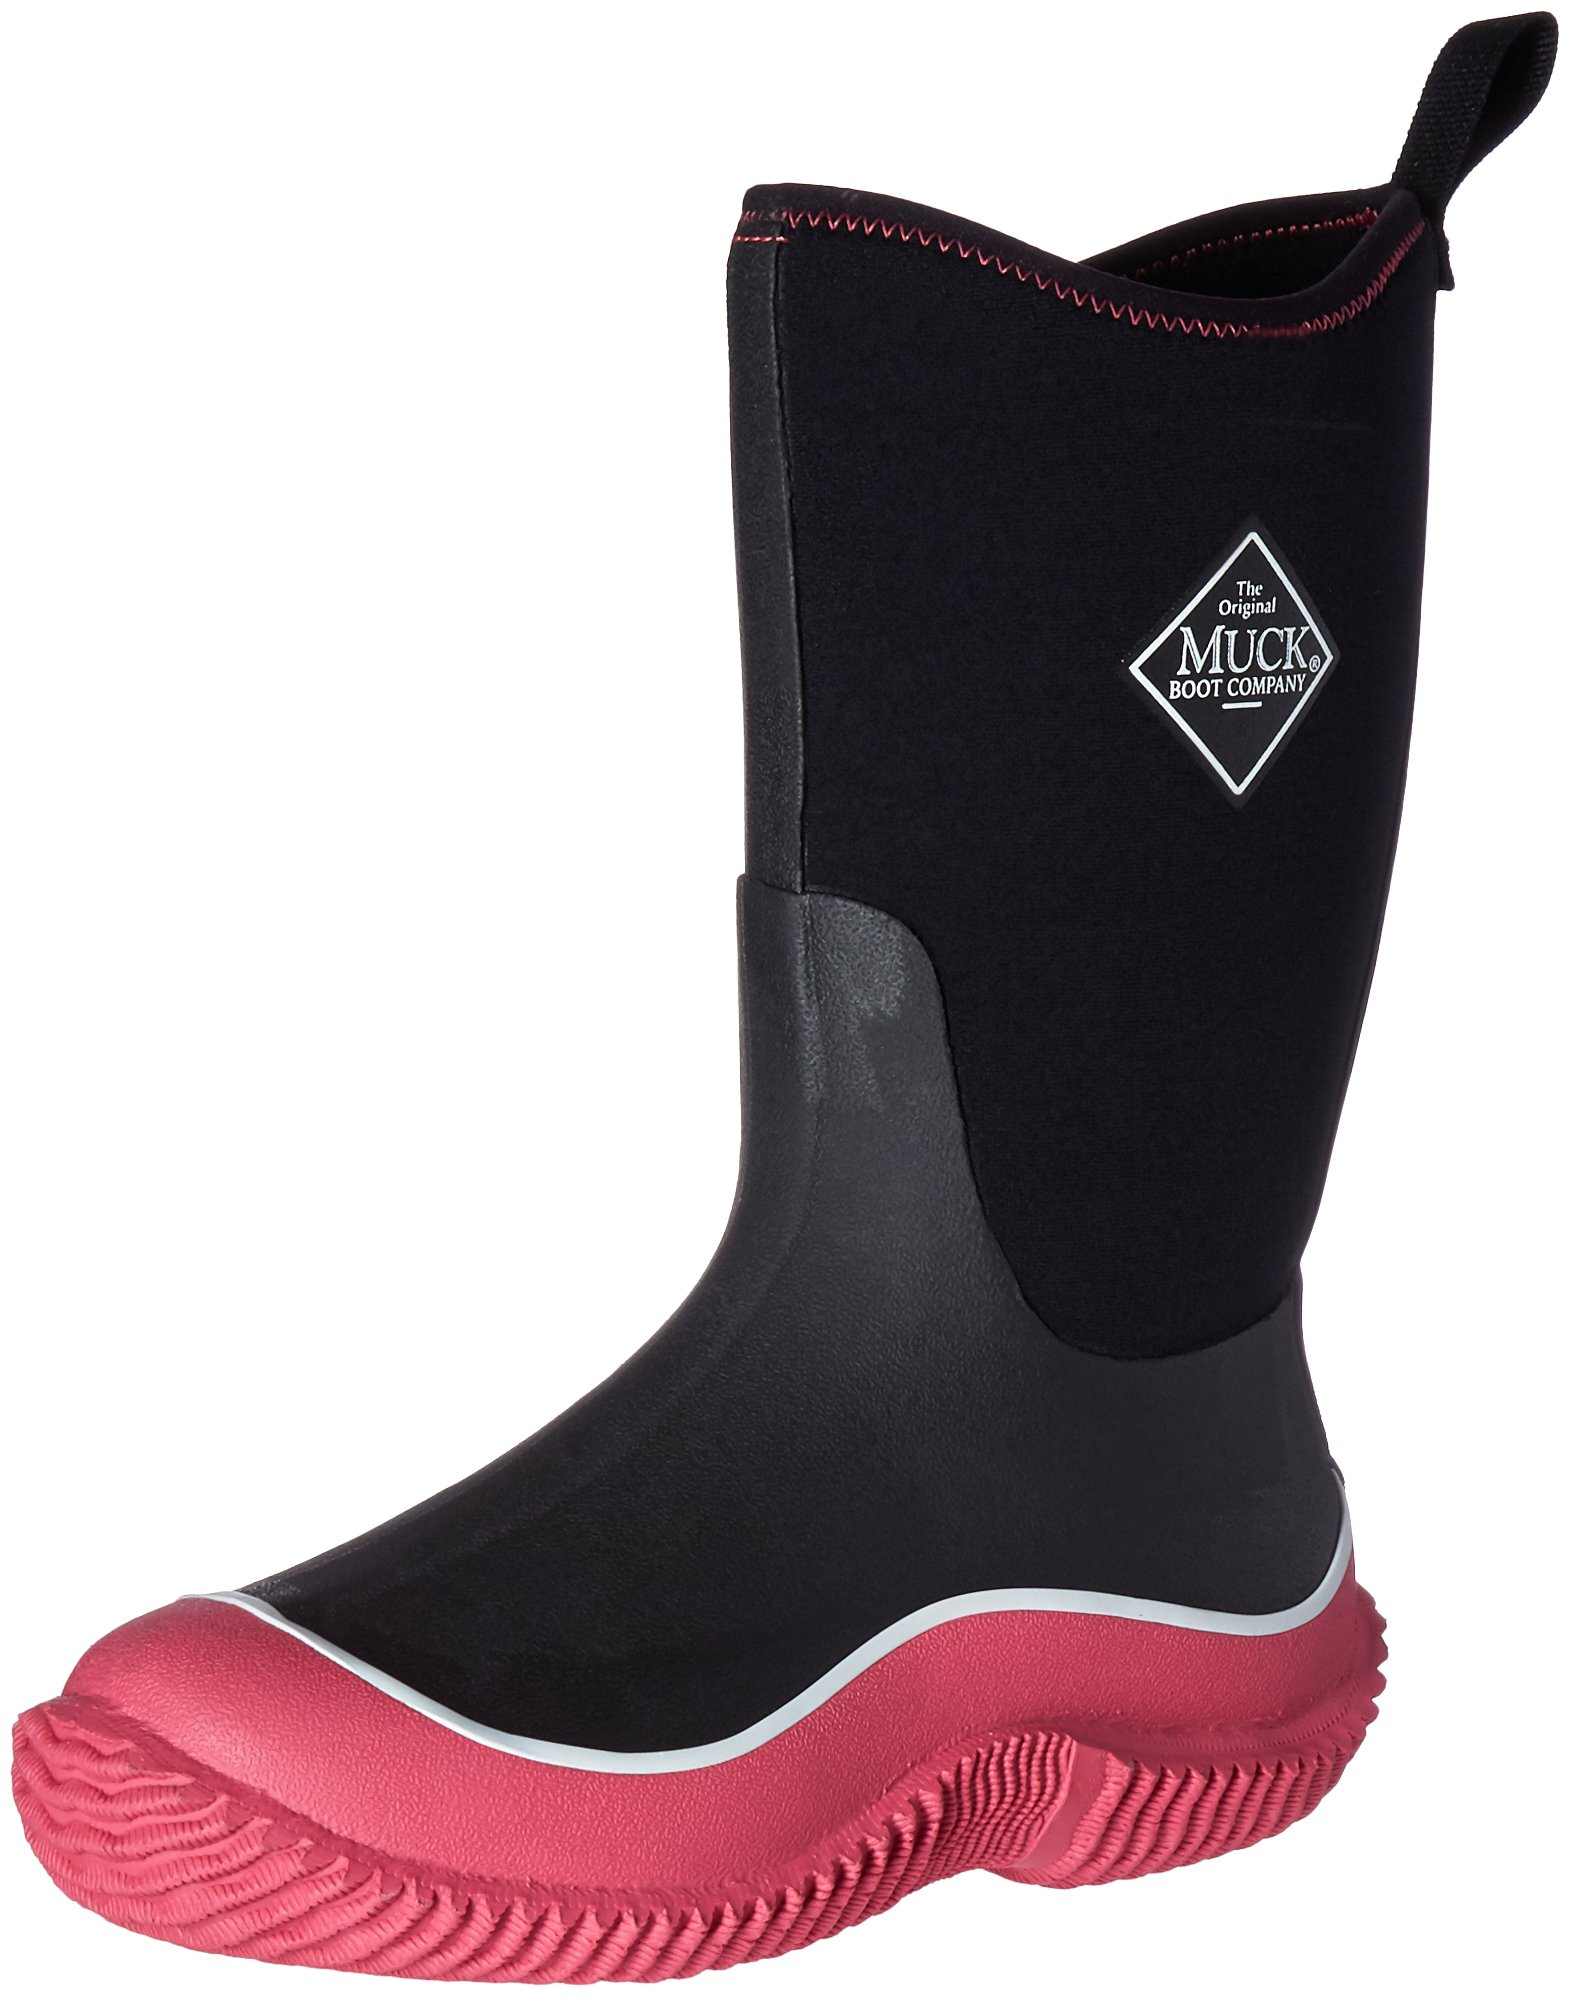 Muck Boots Hale Multi-Season Kids' Rubber Boot,Pink/Black,7 M US Big Kid